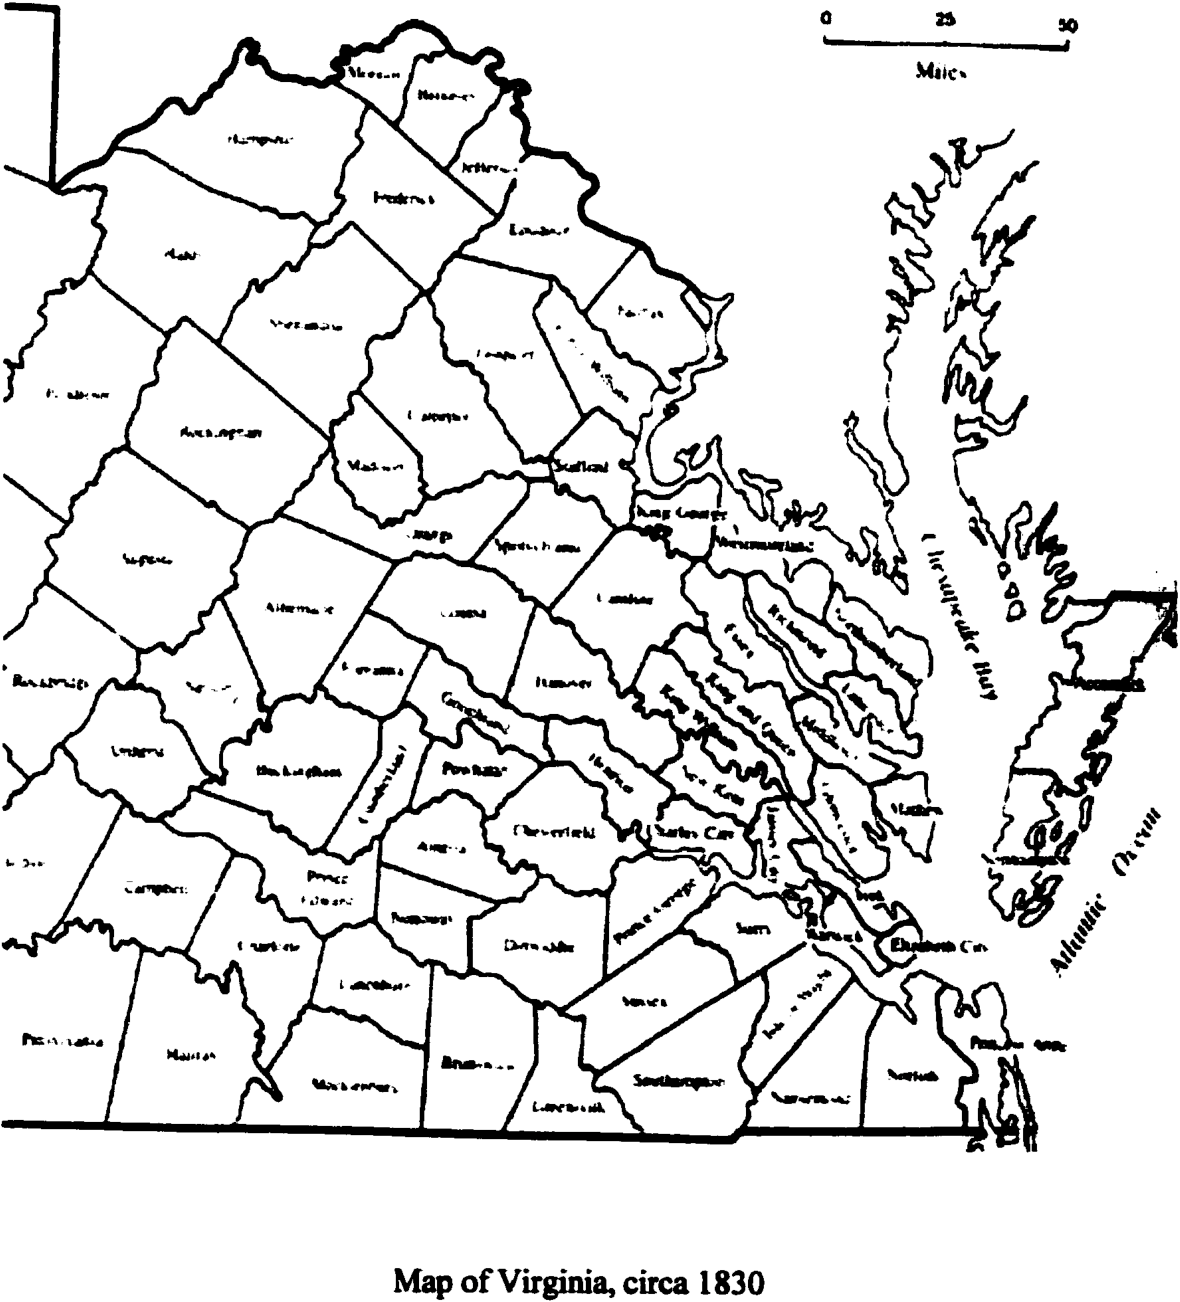 PDF] Three generations of planter -businessmen: The Tayloes ... on map of virginia in 1825, map of virginia historical sites, map of virginia ohio, map of virginia in 1850, map of virginia in 1860, map of virginia in 1822, map of virginia va,